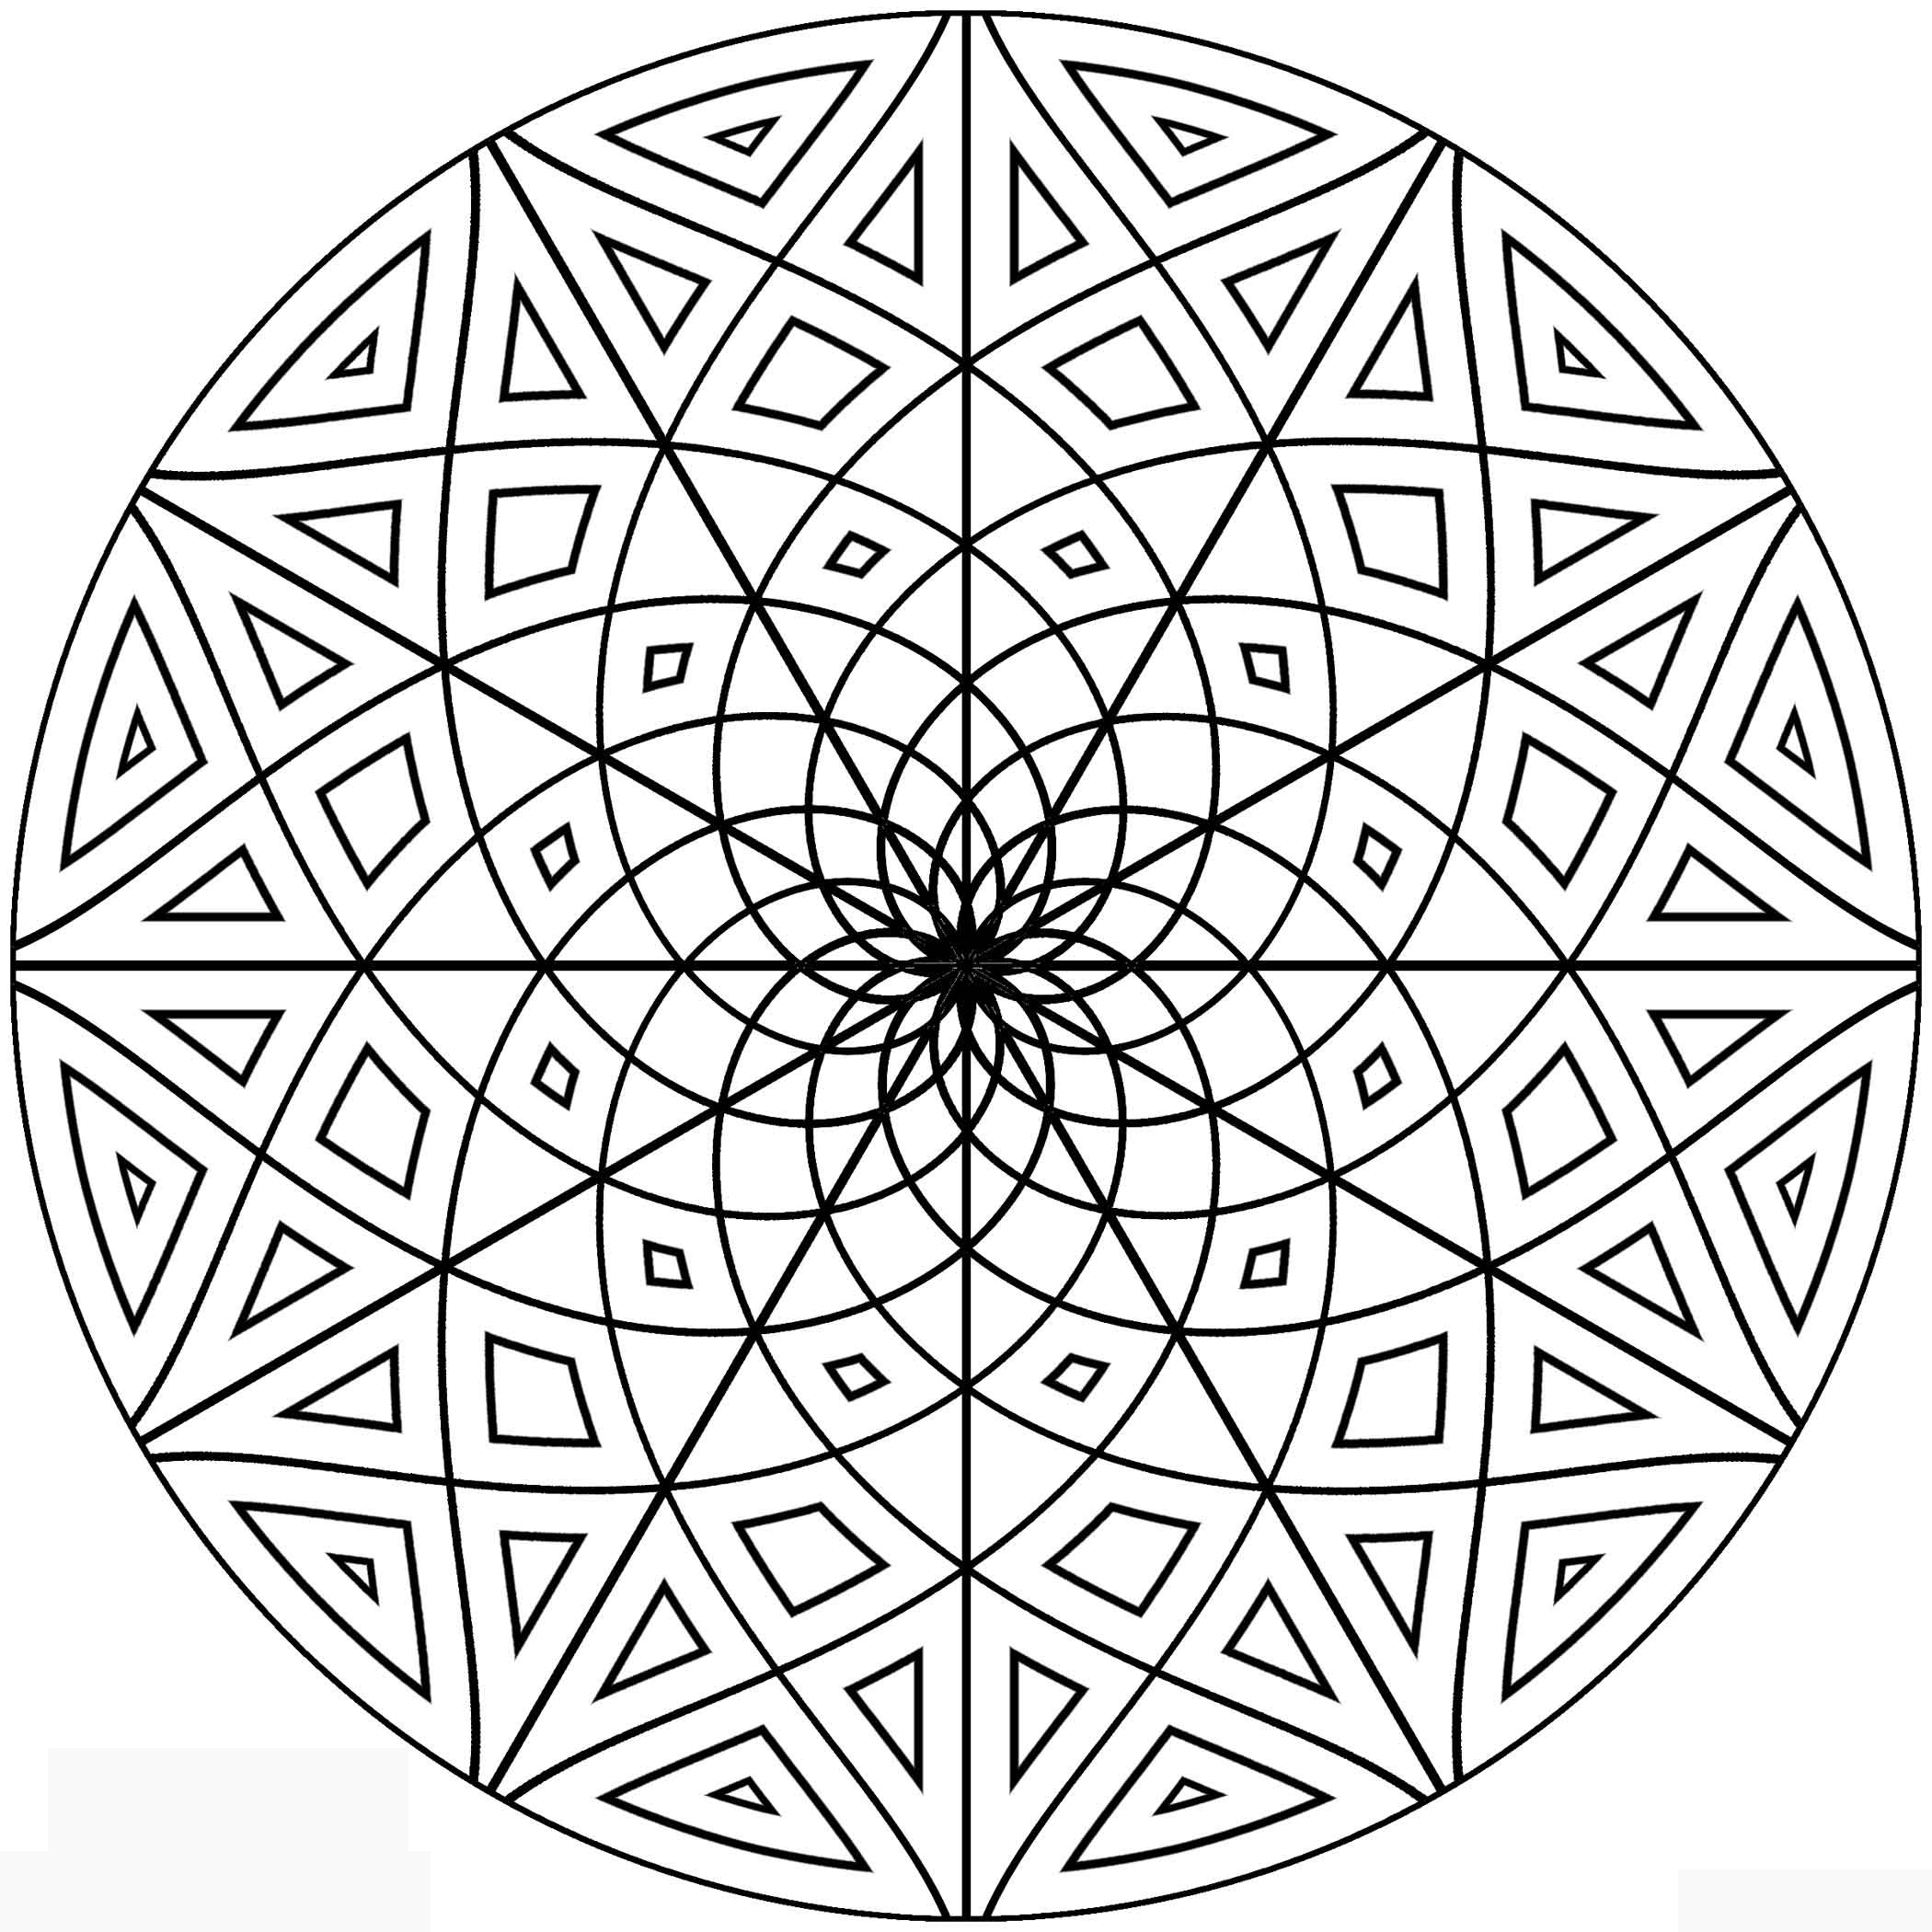 Adult coloring pages free printables mandala - Pattern Colouring Pages